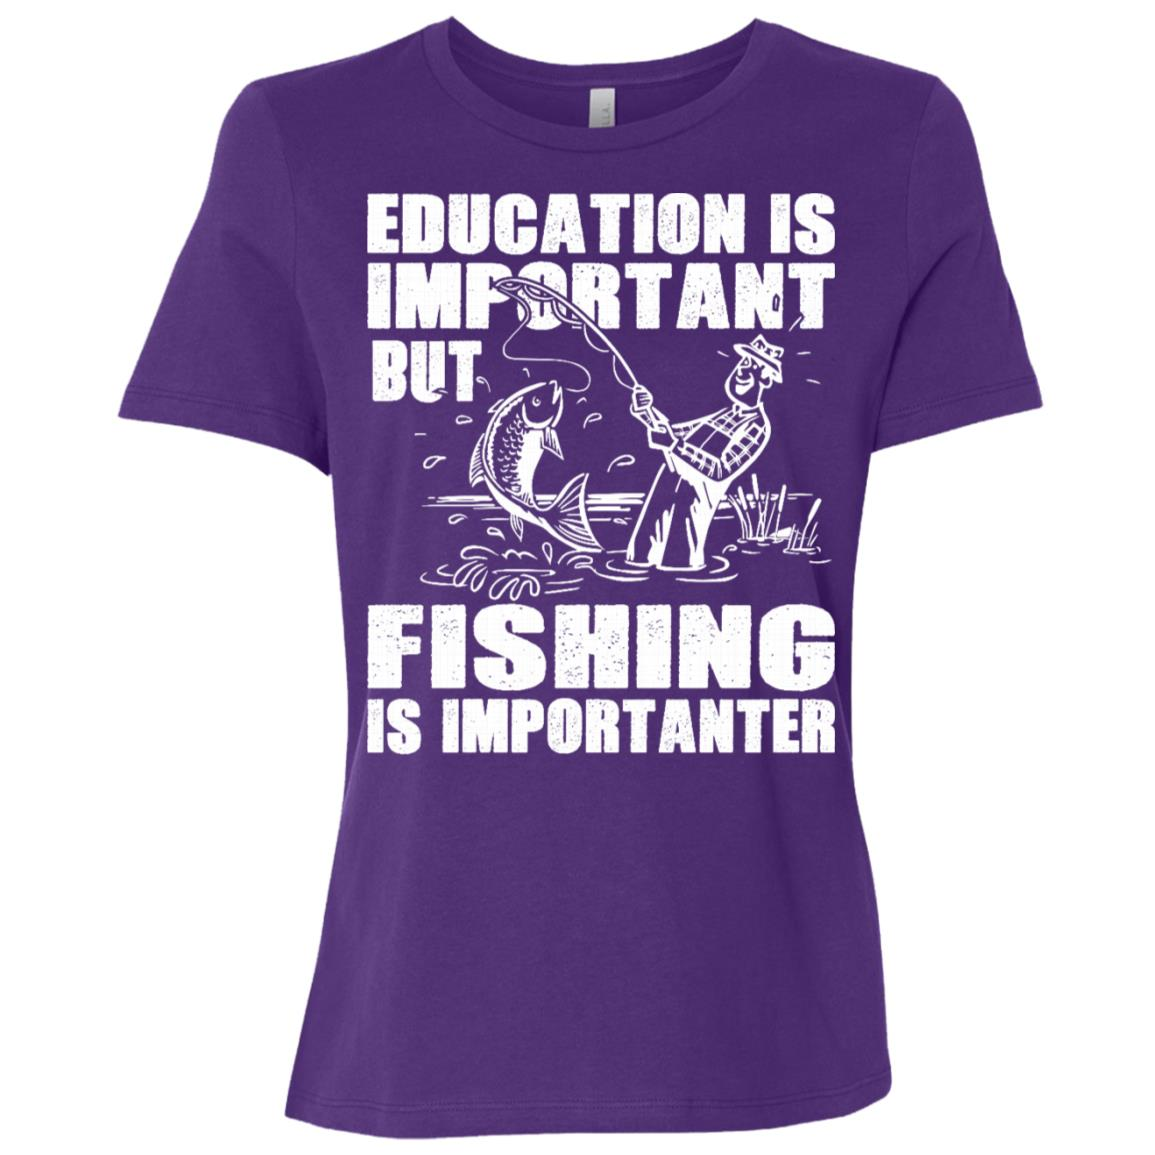 Education Is Important But Fishing Is Importanter Women Short Sleeve T-Shirt